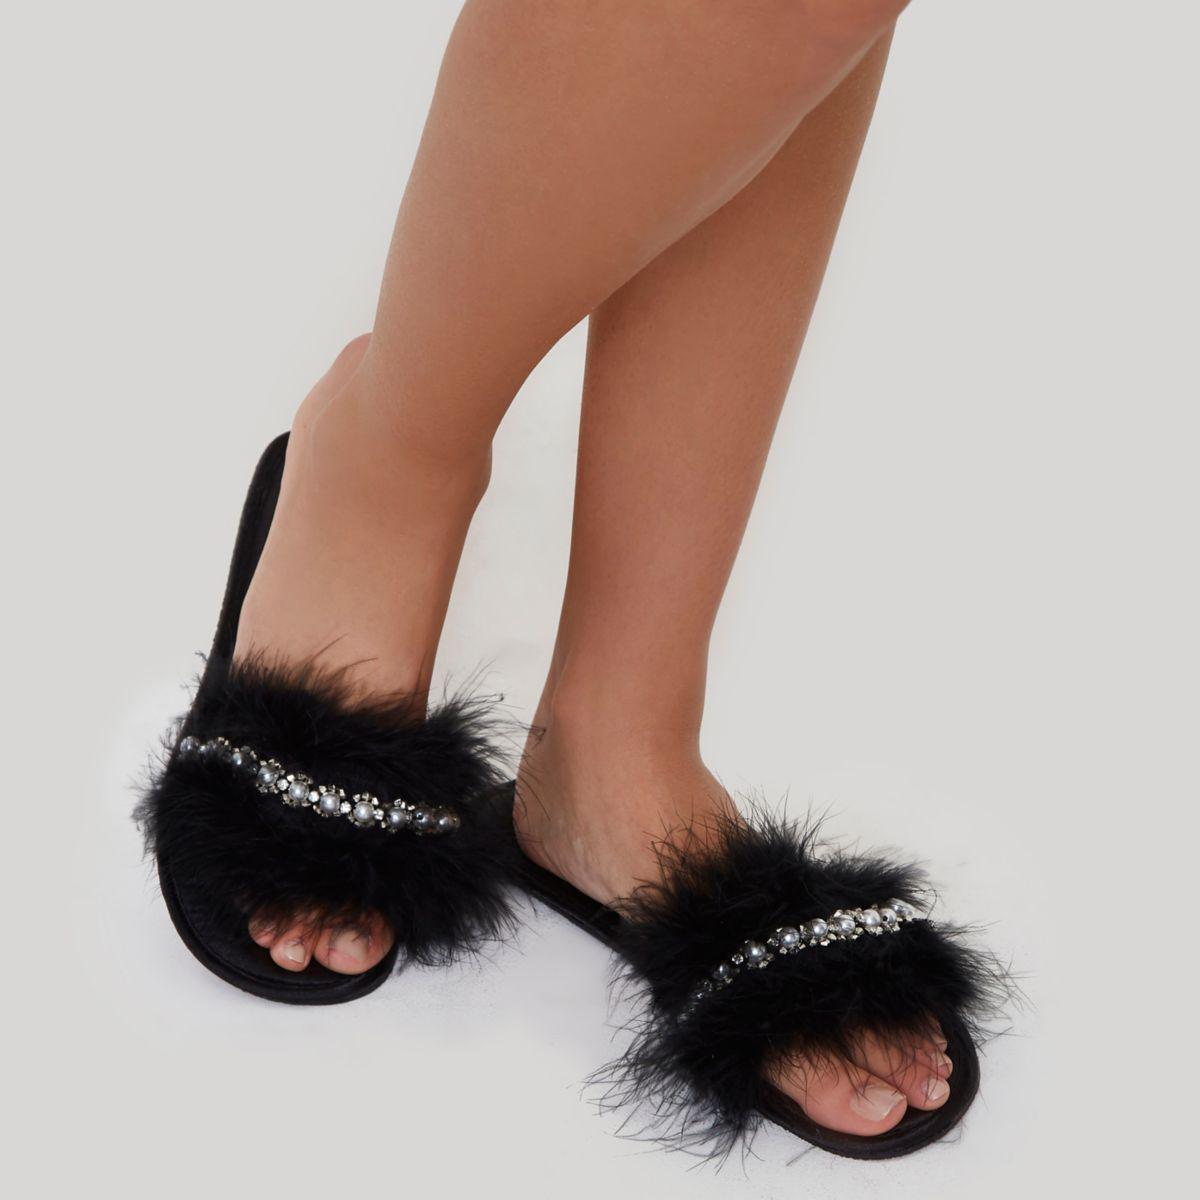 580ad6b7566e6 River Island Black Feather Embellished Slippers in Black - Lyst